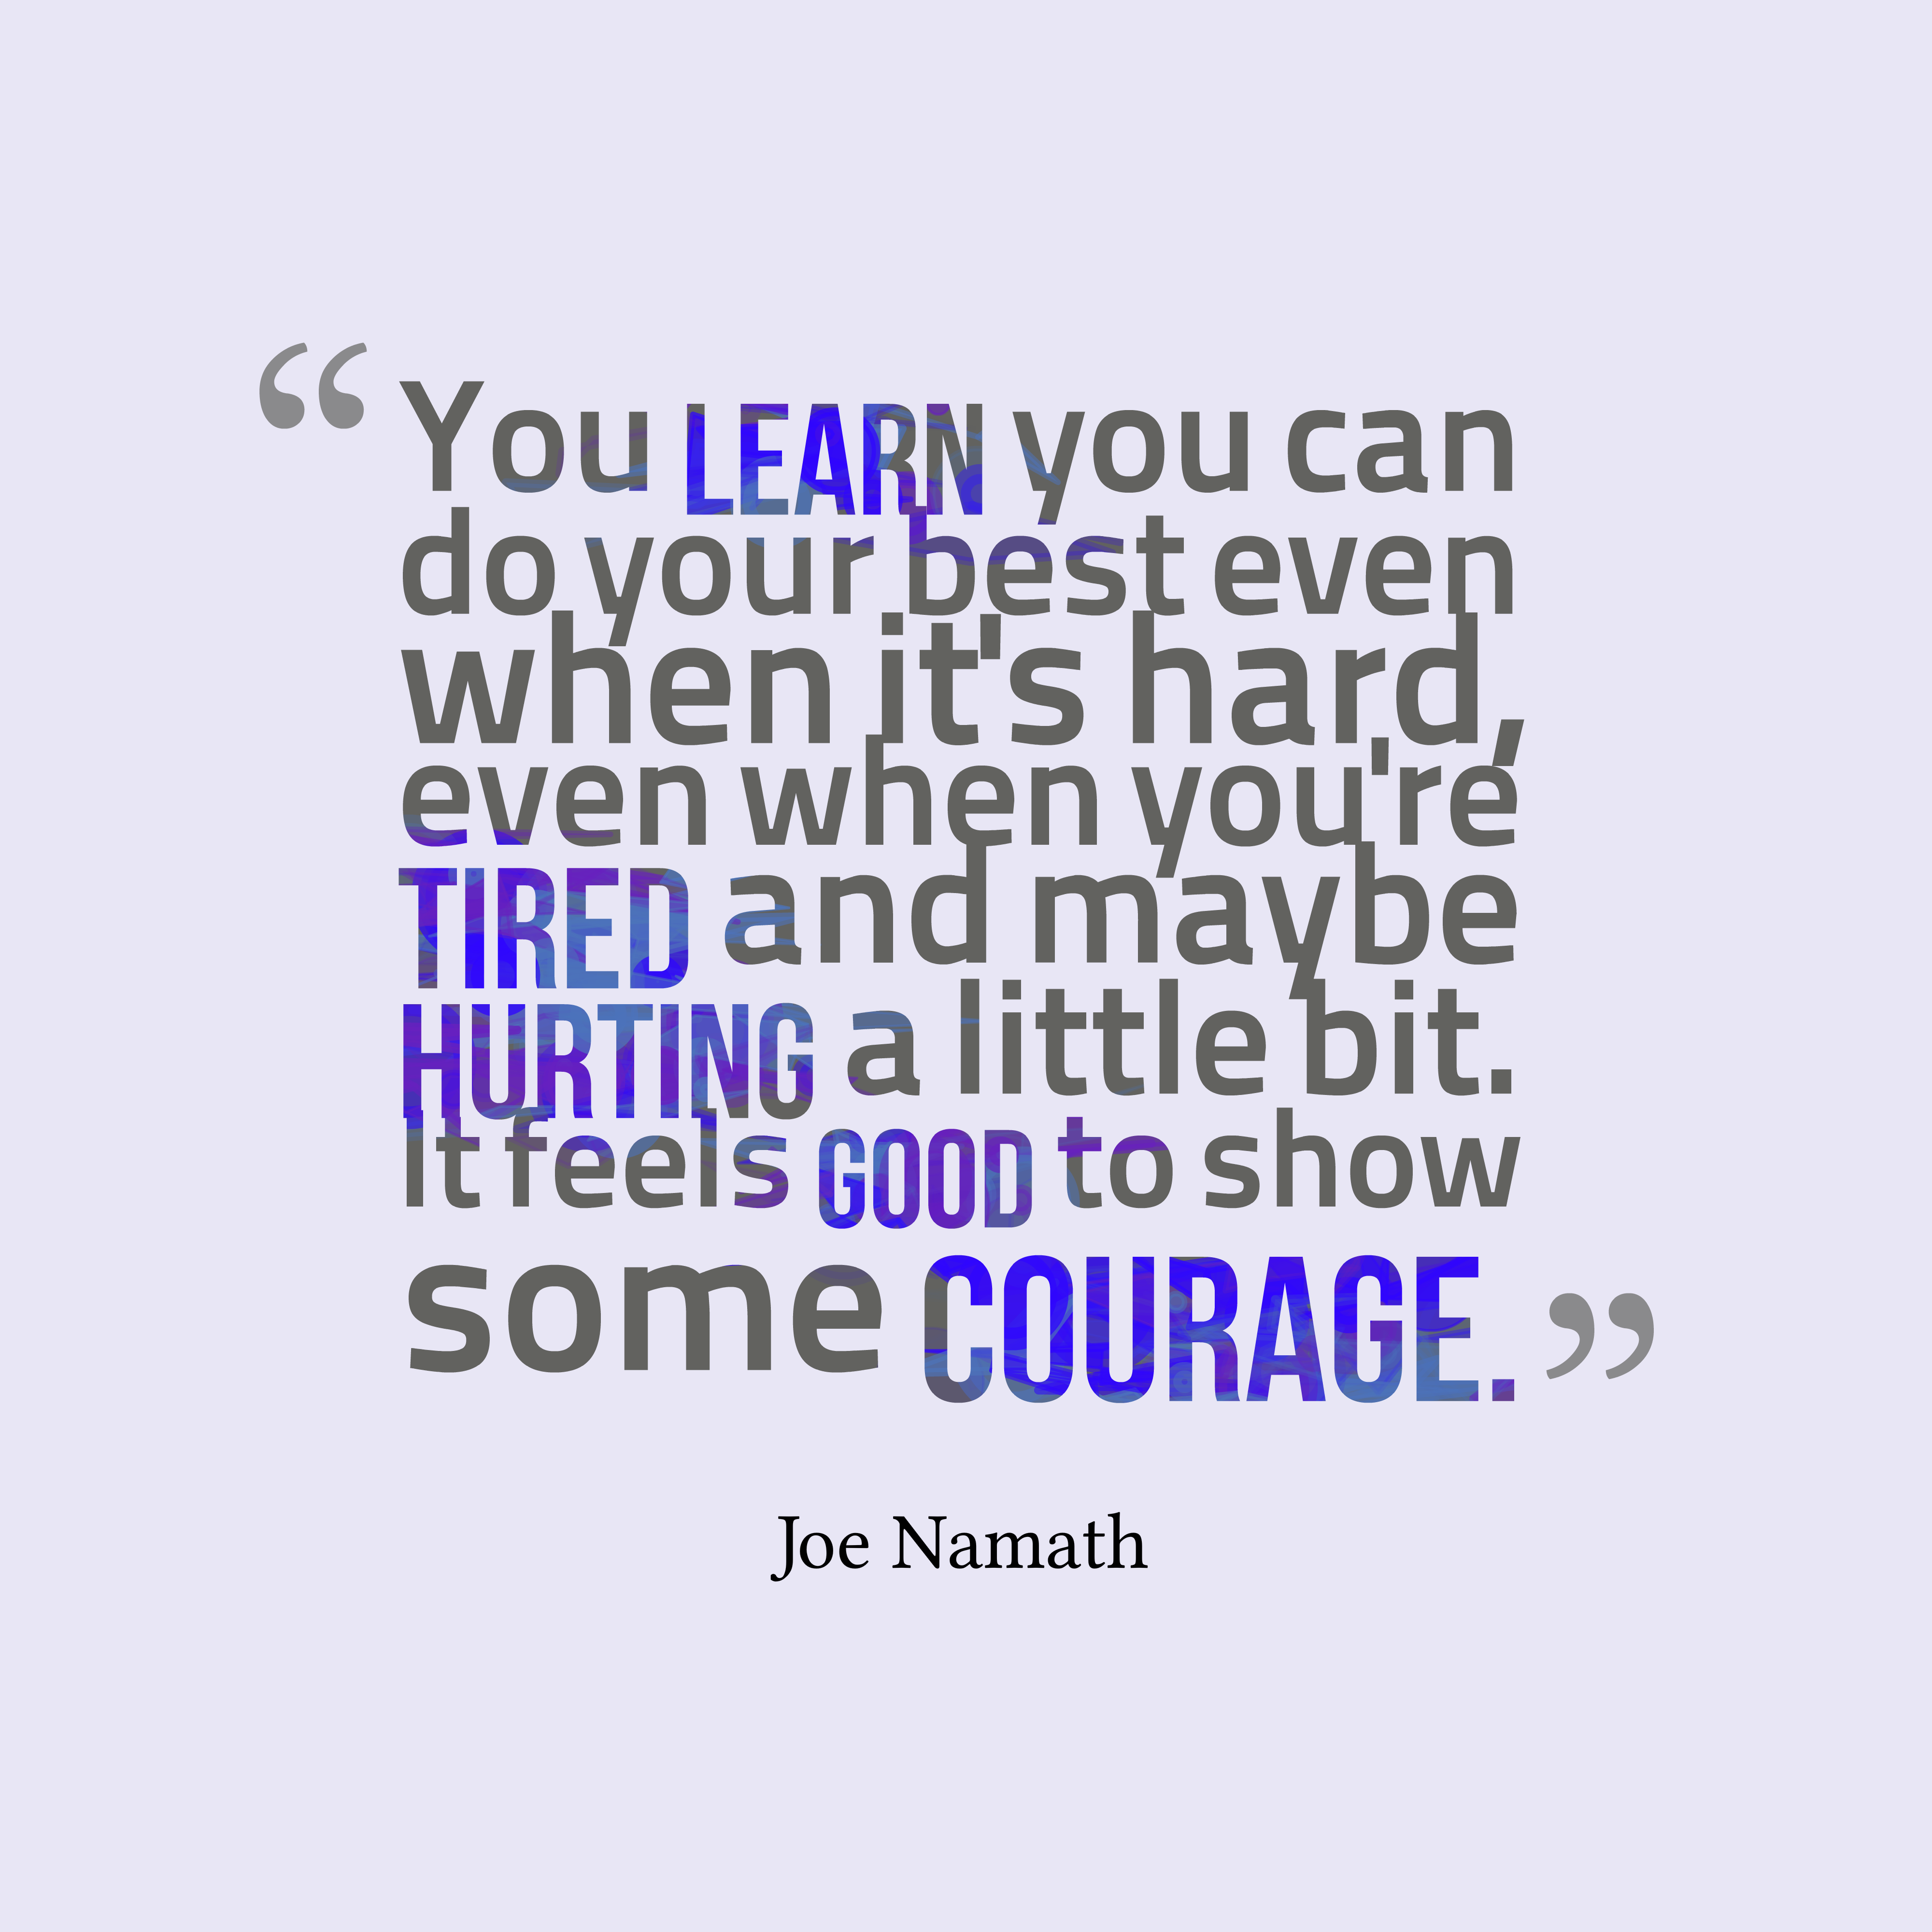 Quotes image of You learn you can do your best even when it's hard, even when you're tired and maybe hurting a little bit. It feels good to show some courage.